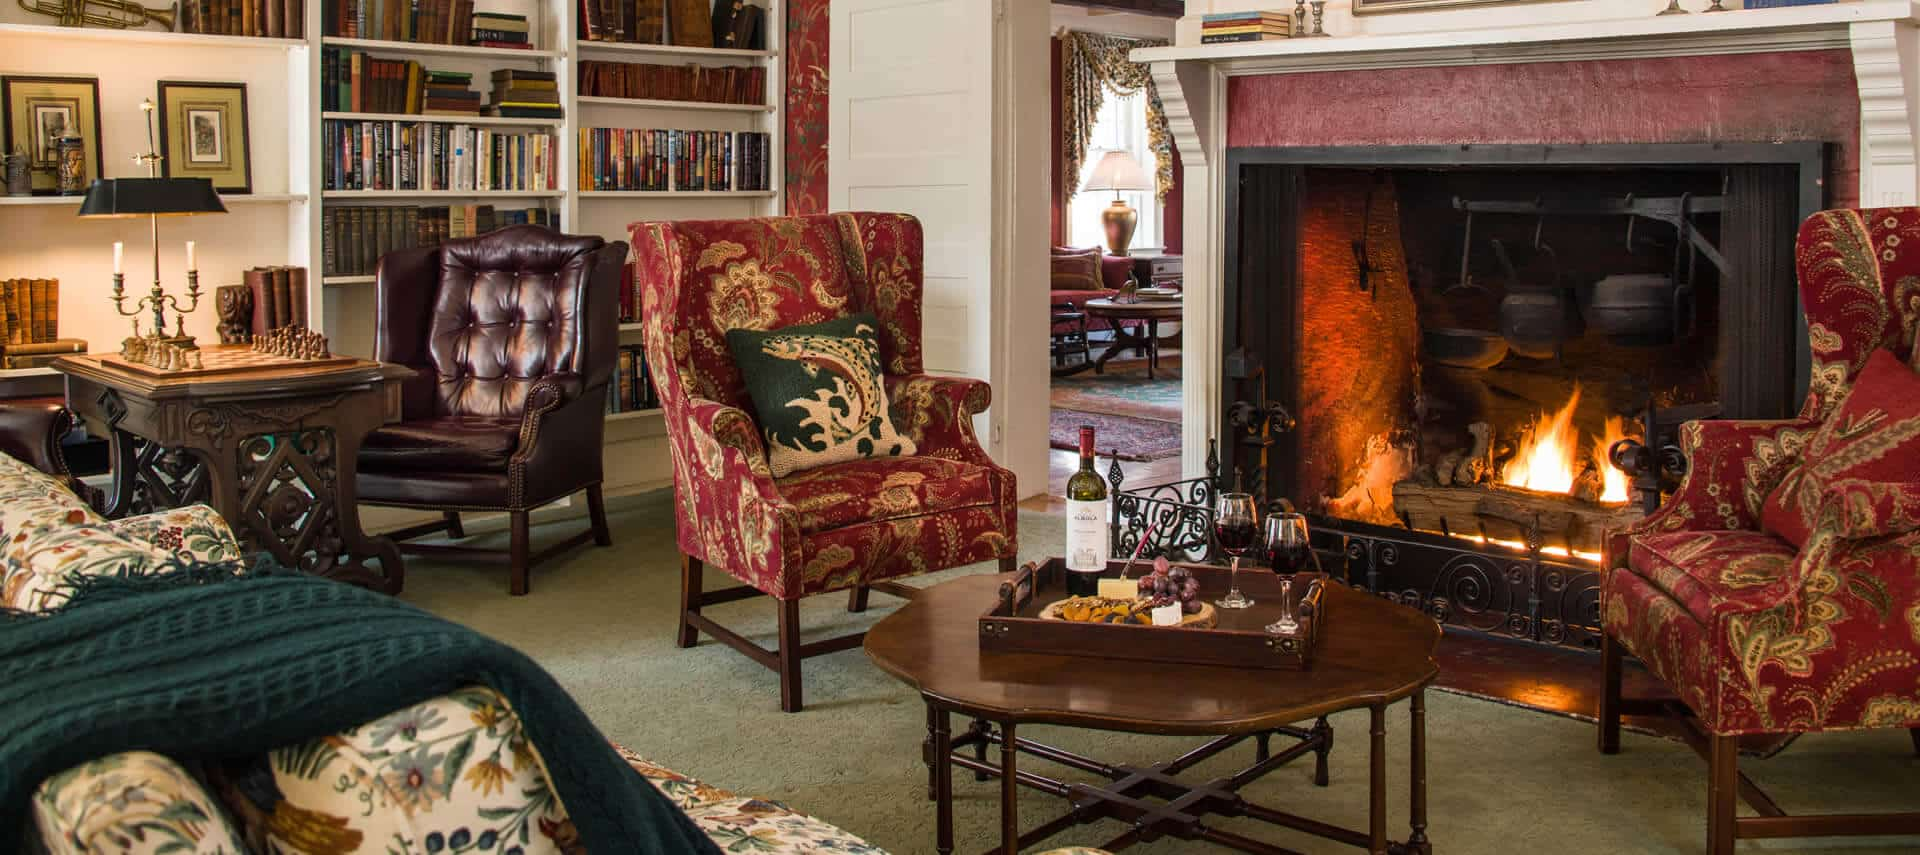 Cozy room with a fireplace, sofa, wingback chairs and a table for games.